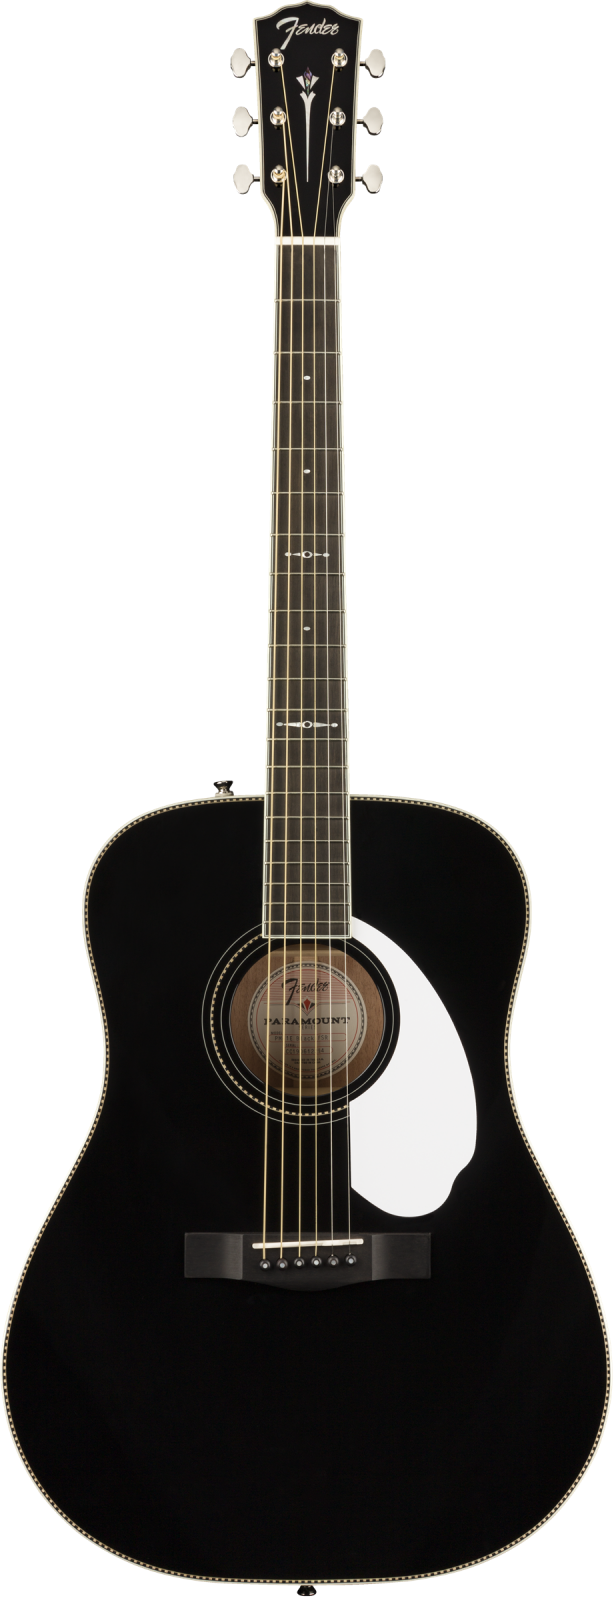 Fender Limited Edition PM-1 Deluxe Dreadnought with Case, Ebony Fingerboard, Black